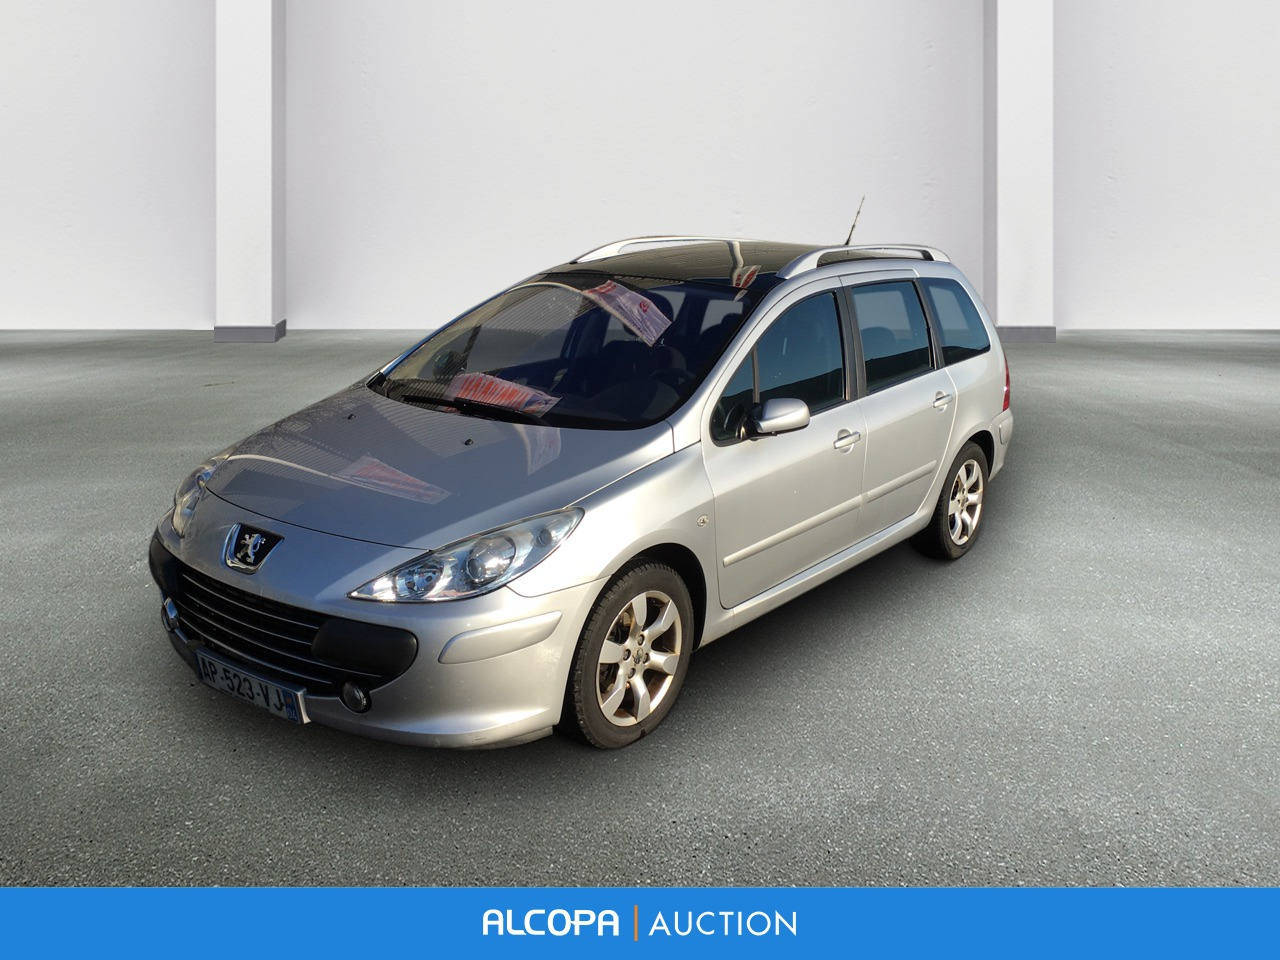 peugeot 307 sw 307 sw 1 6 hdi 16v 110ch fap sport marseille alcopa auction. Black Bedroom Furniture Sets. Home Design Ideas